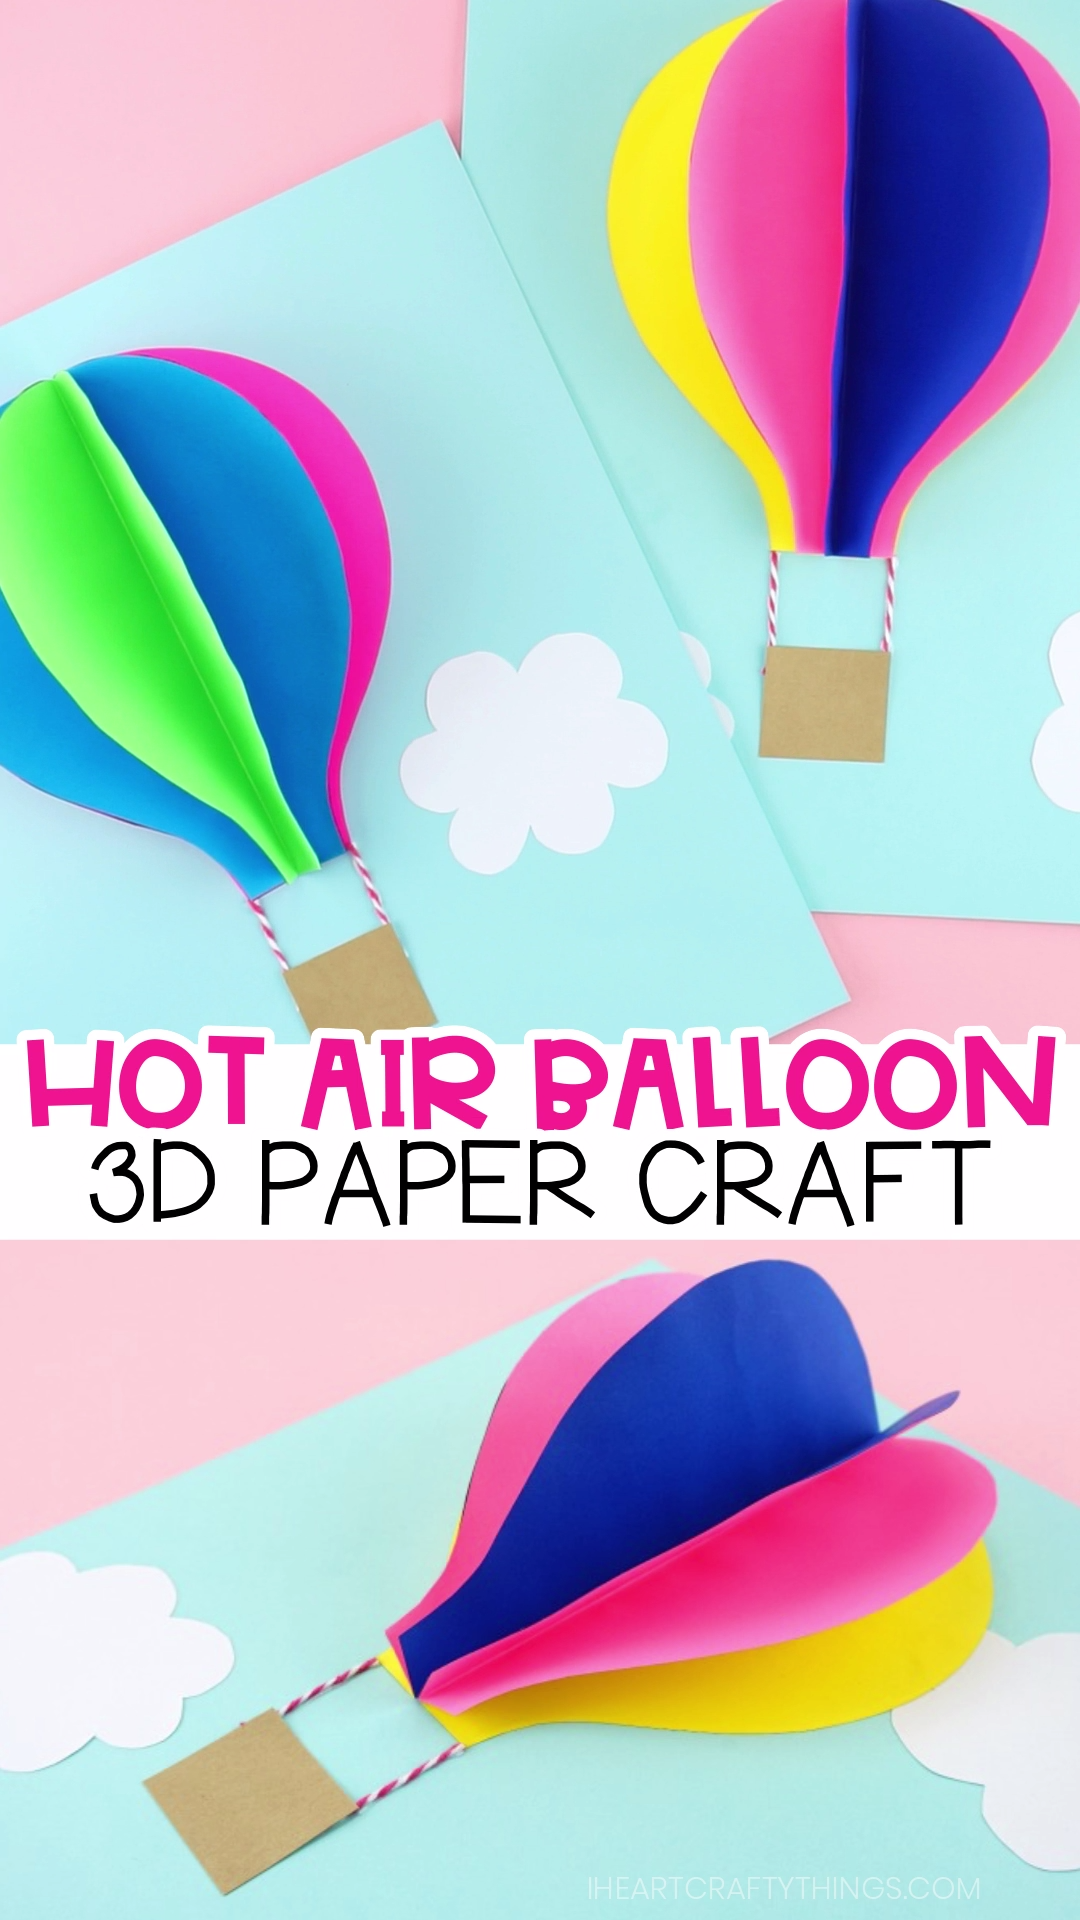 How to Make a 3D Paper Hot Air Balloon Craft #crafts #easy #fun #paper #papercrafts